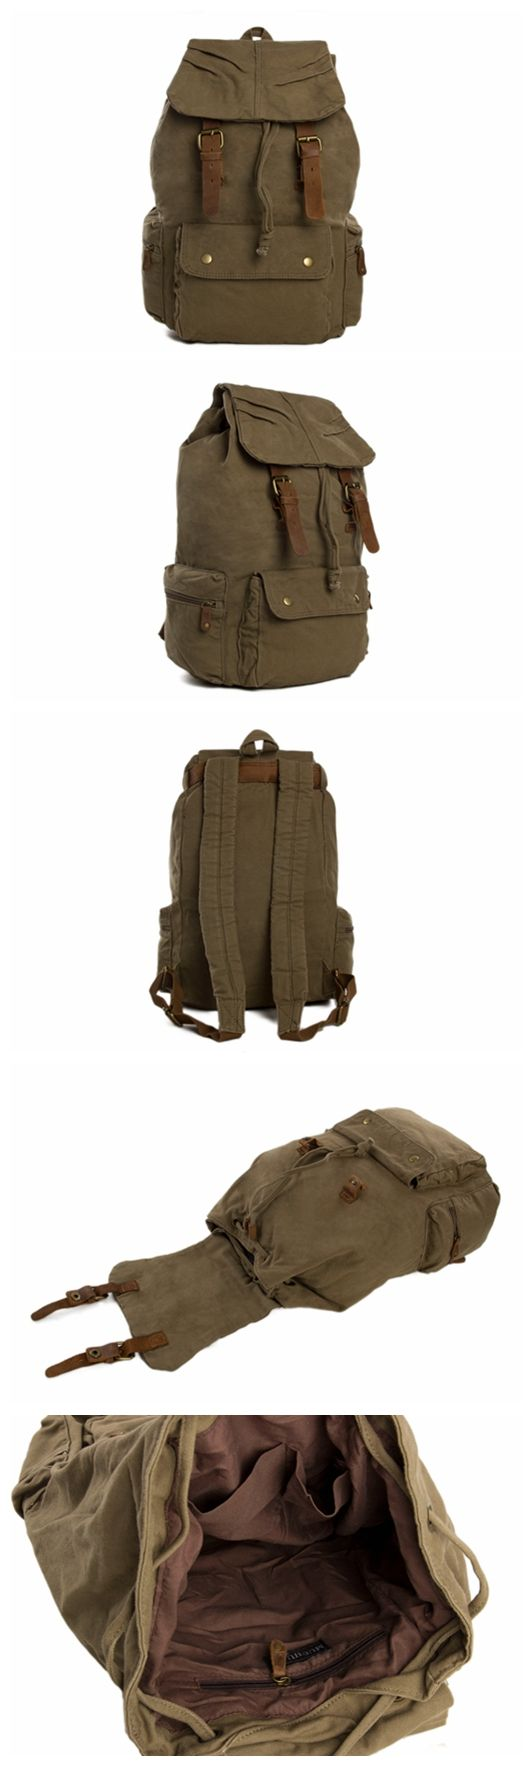 Army Green Waxed Canvas Backpack, School Backpack, Travel Backpack